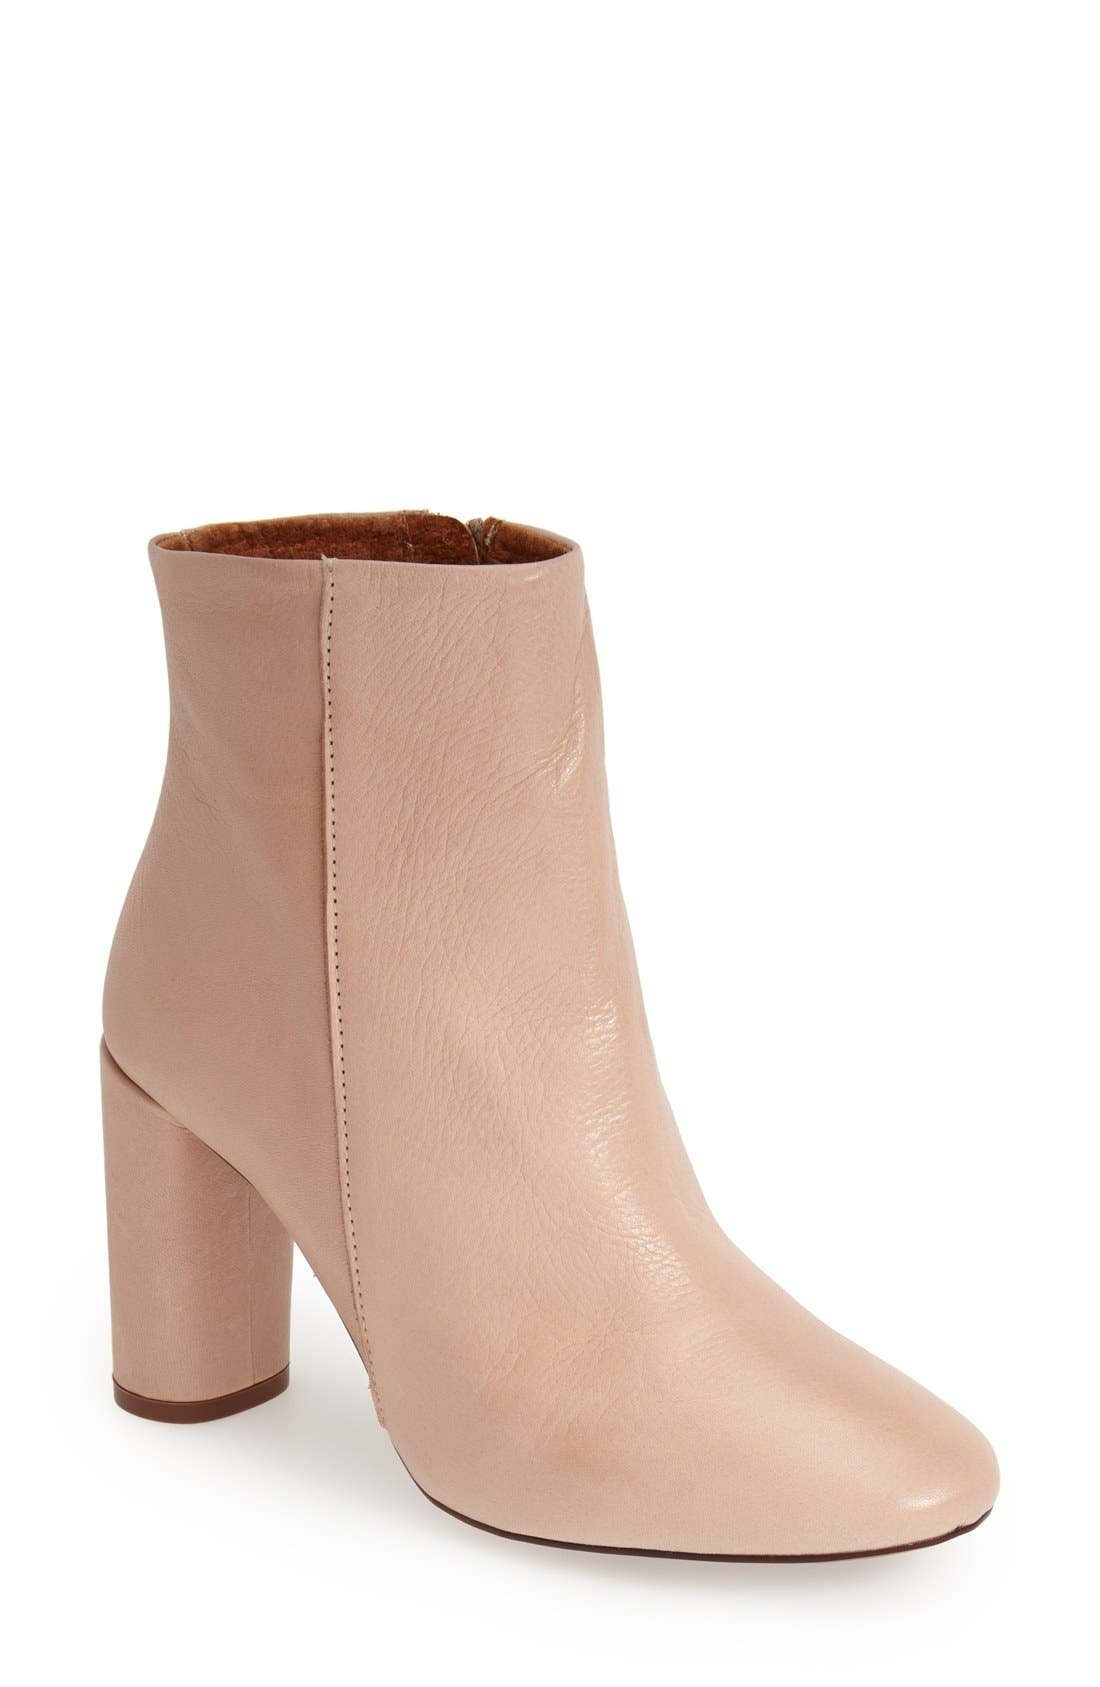 Alternate Image 1 Selected - Topshop 'Magnum' Leather Ankle Boot (Women)